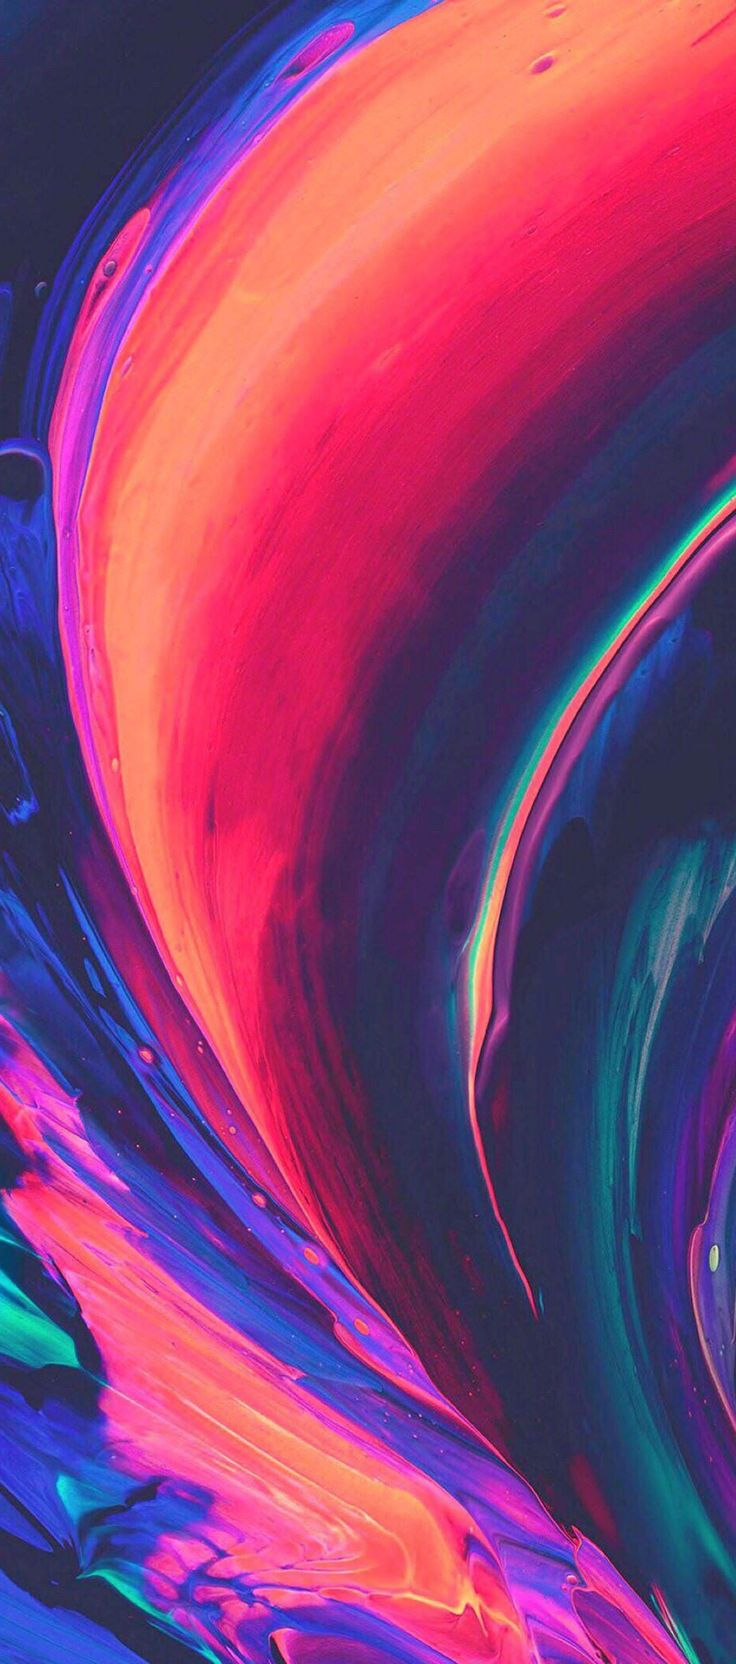 IOS 11, IPhone X, Purple, Blue, Clean, Simple, Abstract